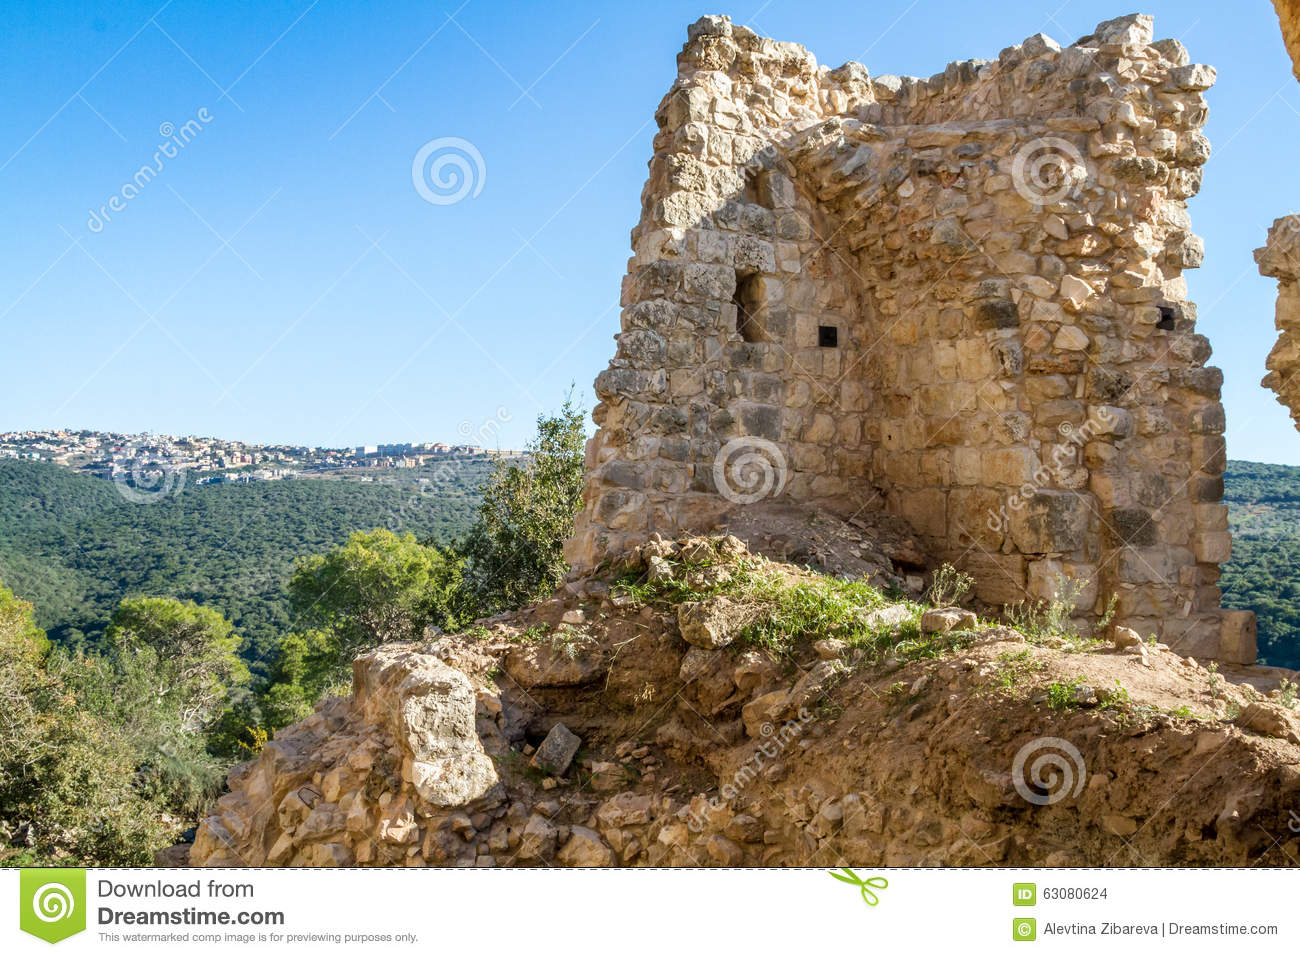 Download Les Ruines De La Forteresse De Yehiam, Israël Photo stock - Image du vieux, fort: 63080624